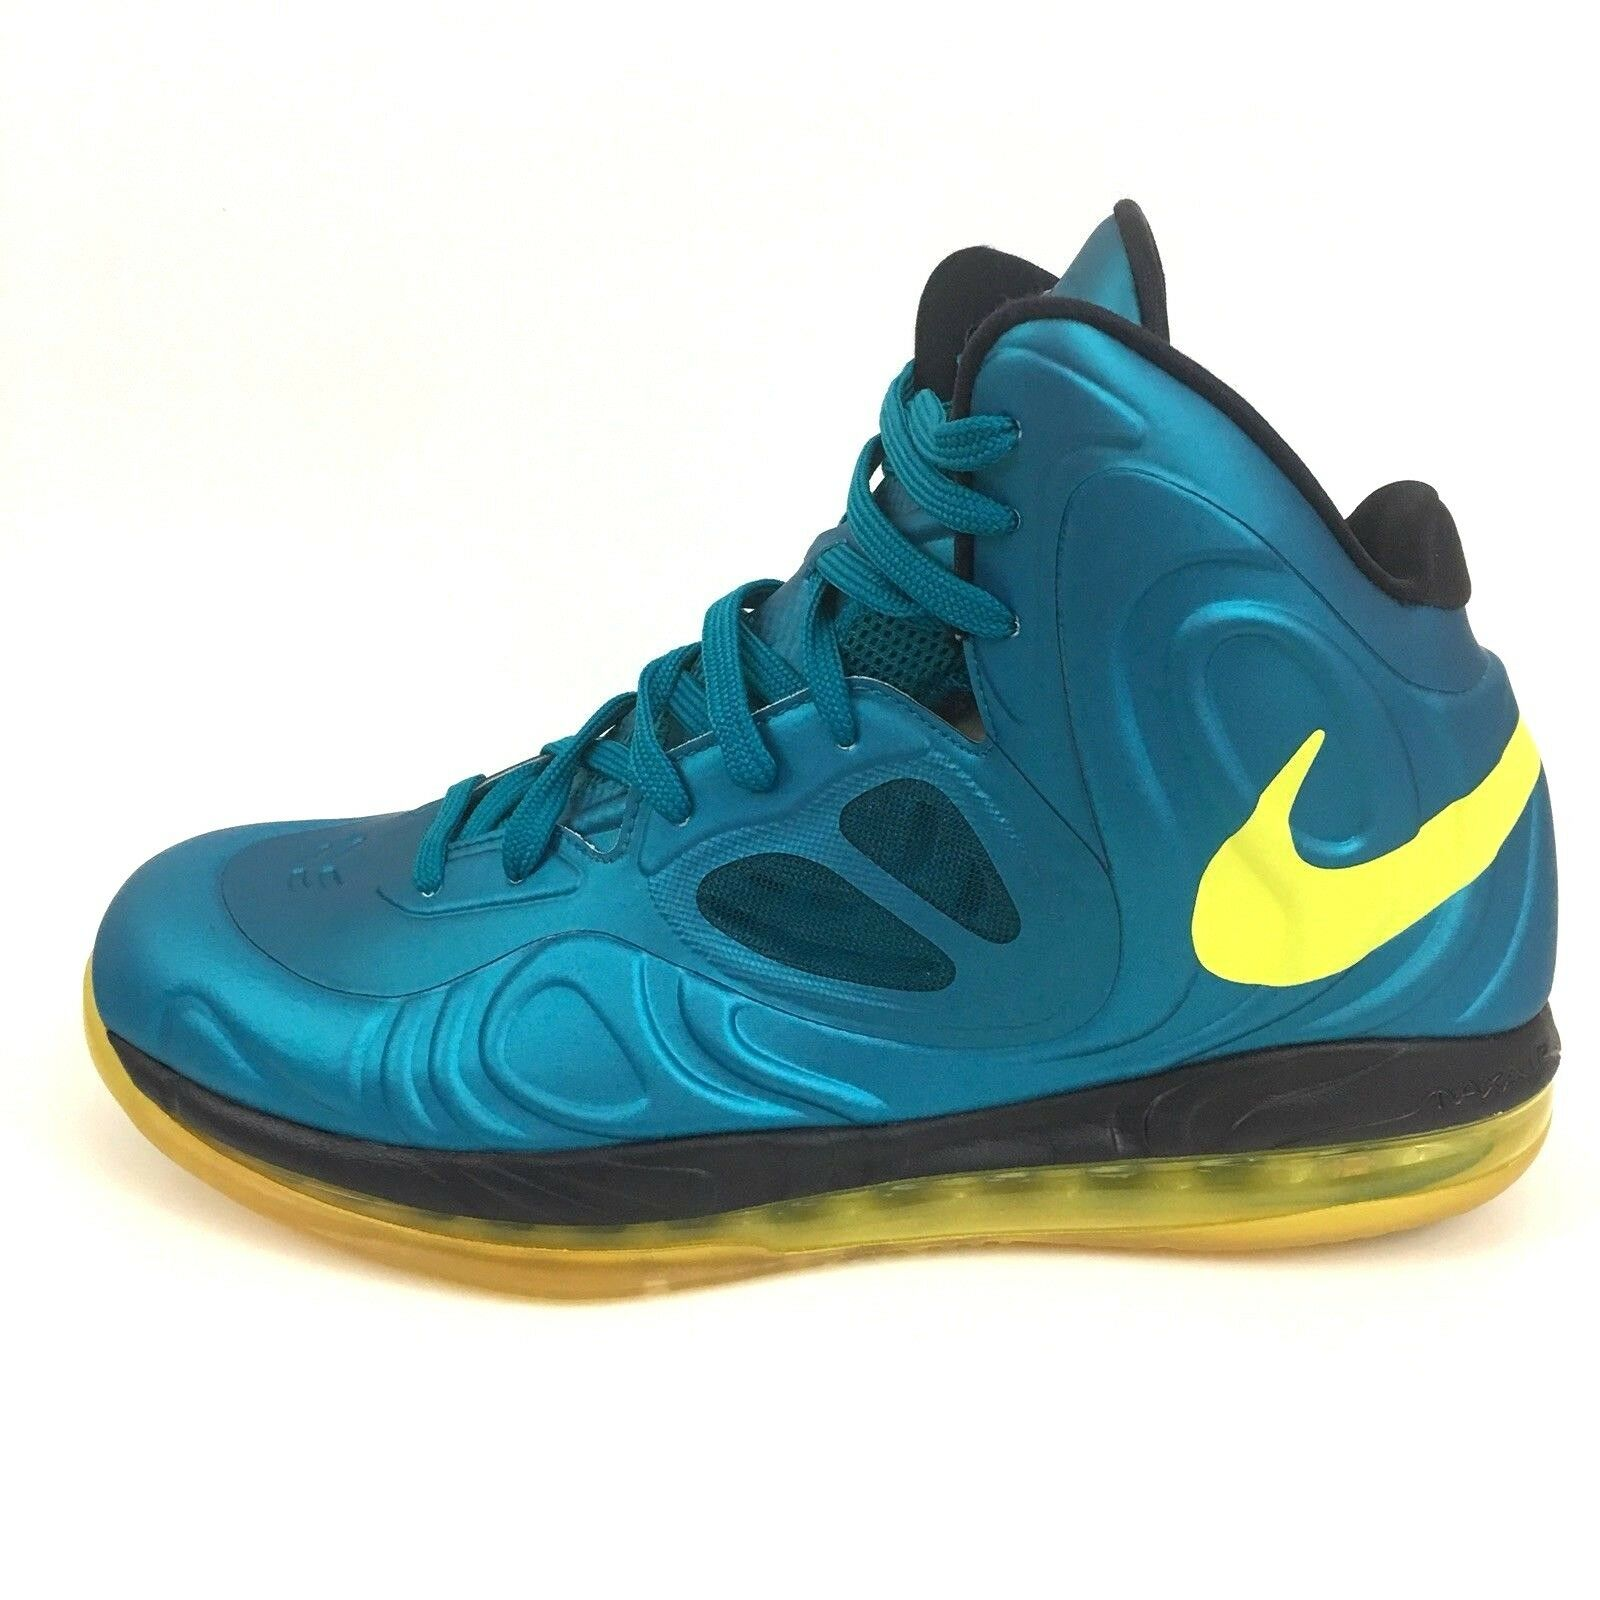 Nike Men's Air Max Hyperposite Tropical Teal Sonic Yellow Basketball shoes Sz 10